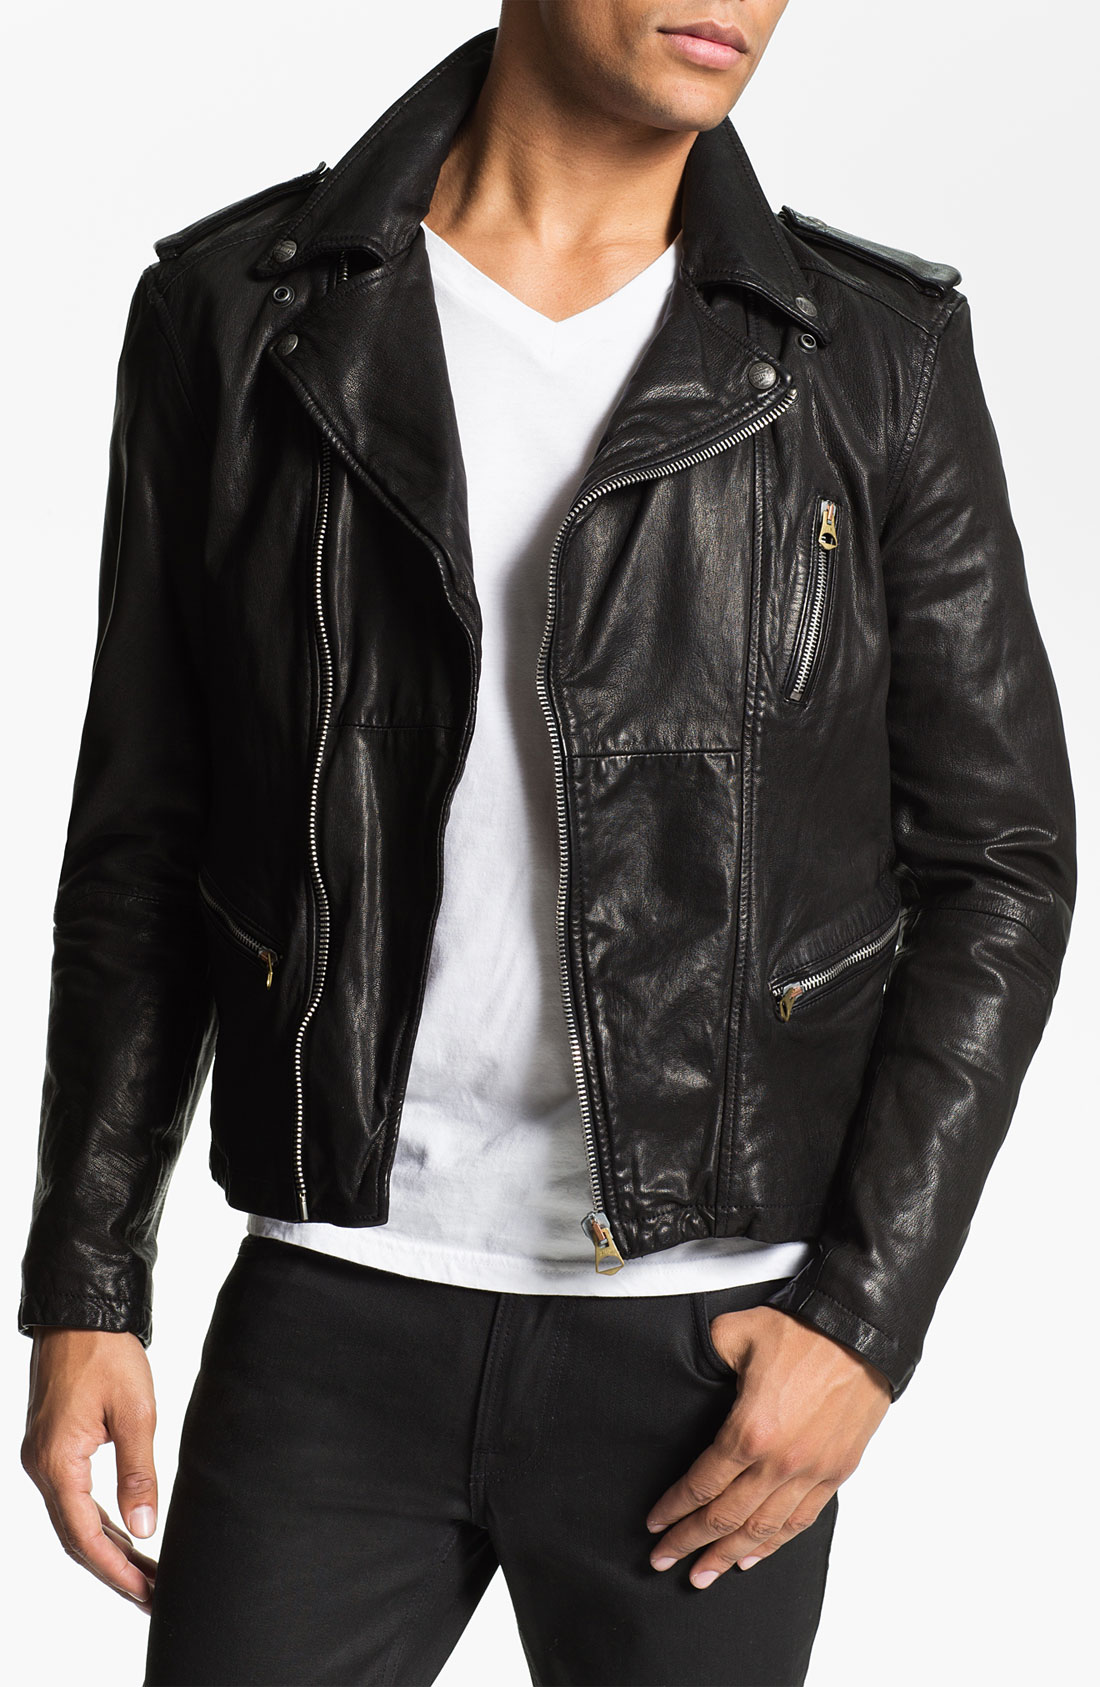 Scotch & soda leather jacket